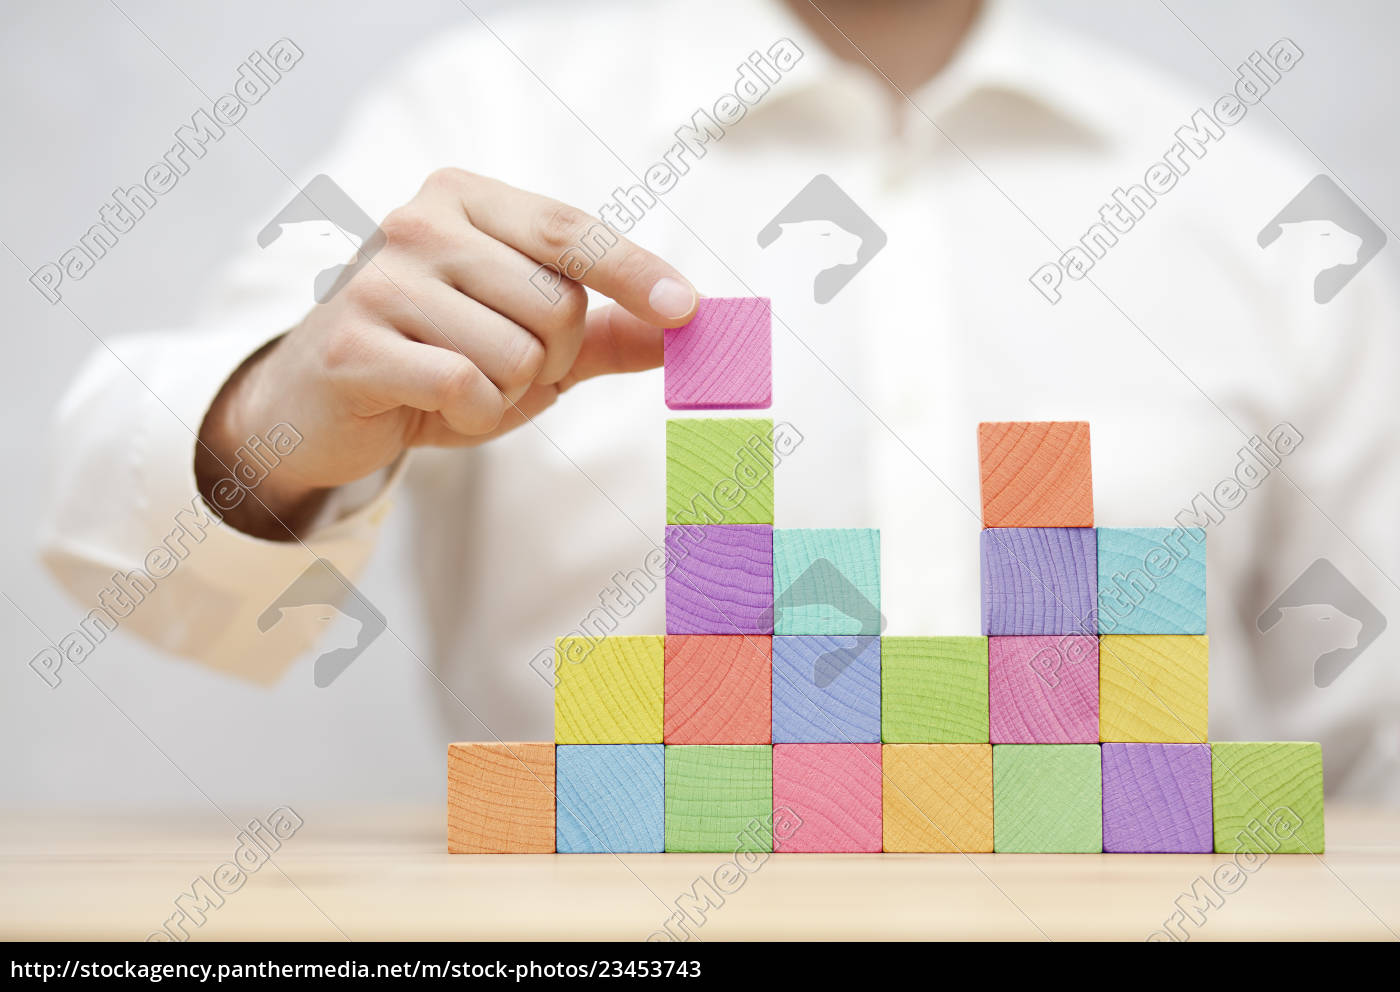 man's, hand, stacking, colorful, wooden, blocks. - 23453743